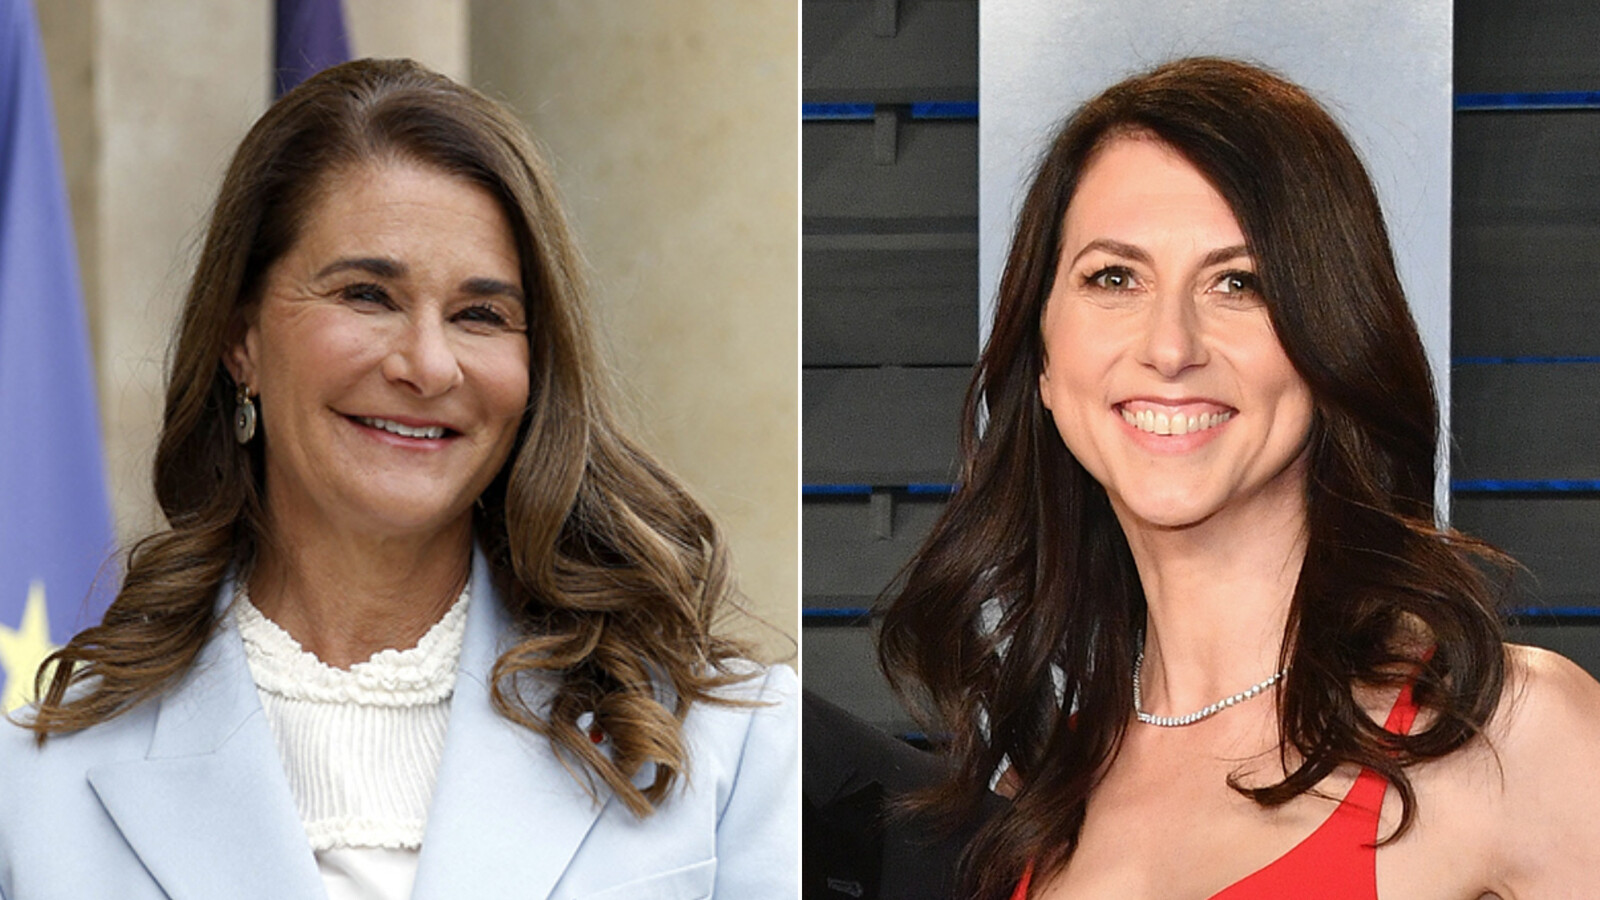 Melinda French Gates and MacKenzie Scott team up to give $40 million to support women